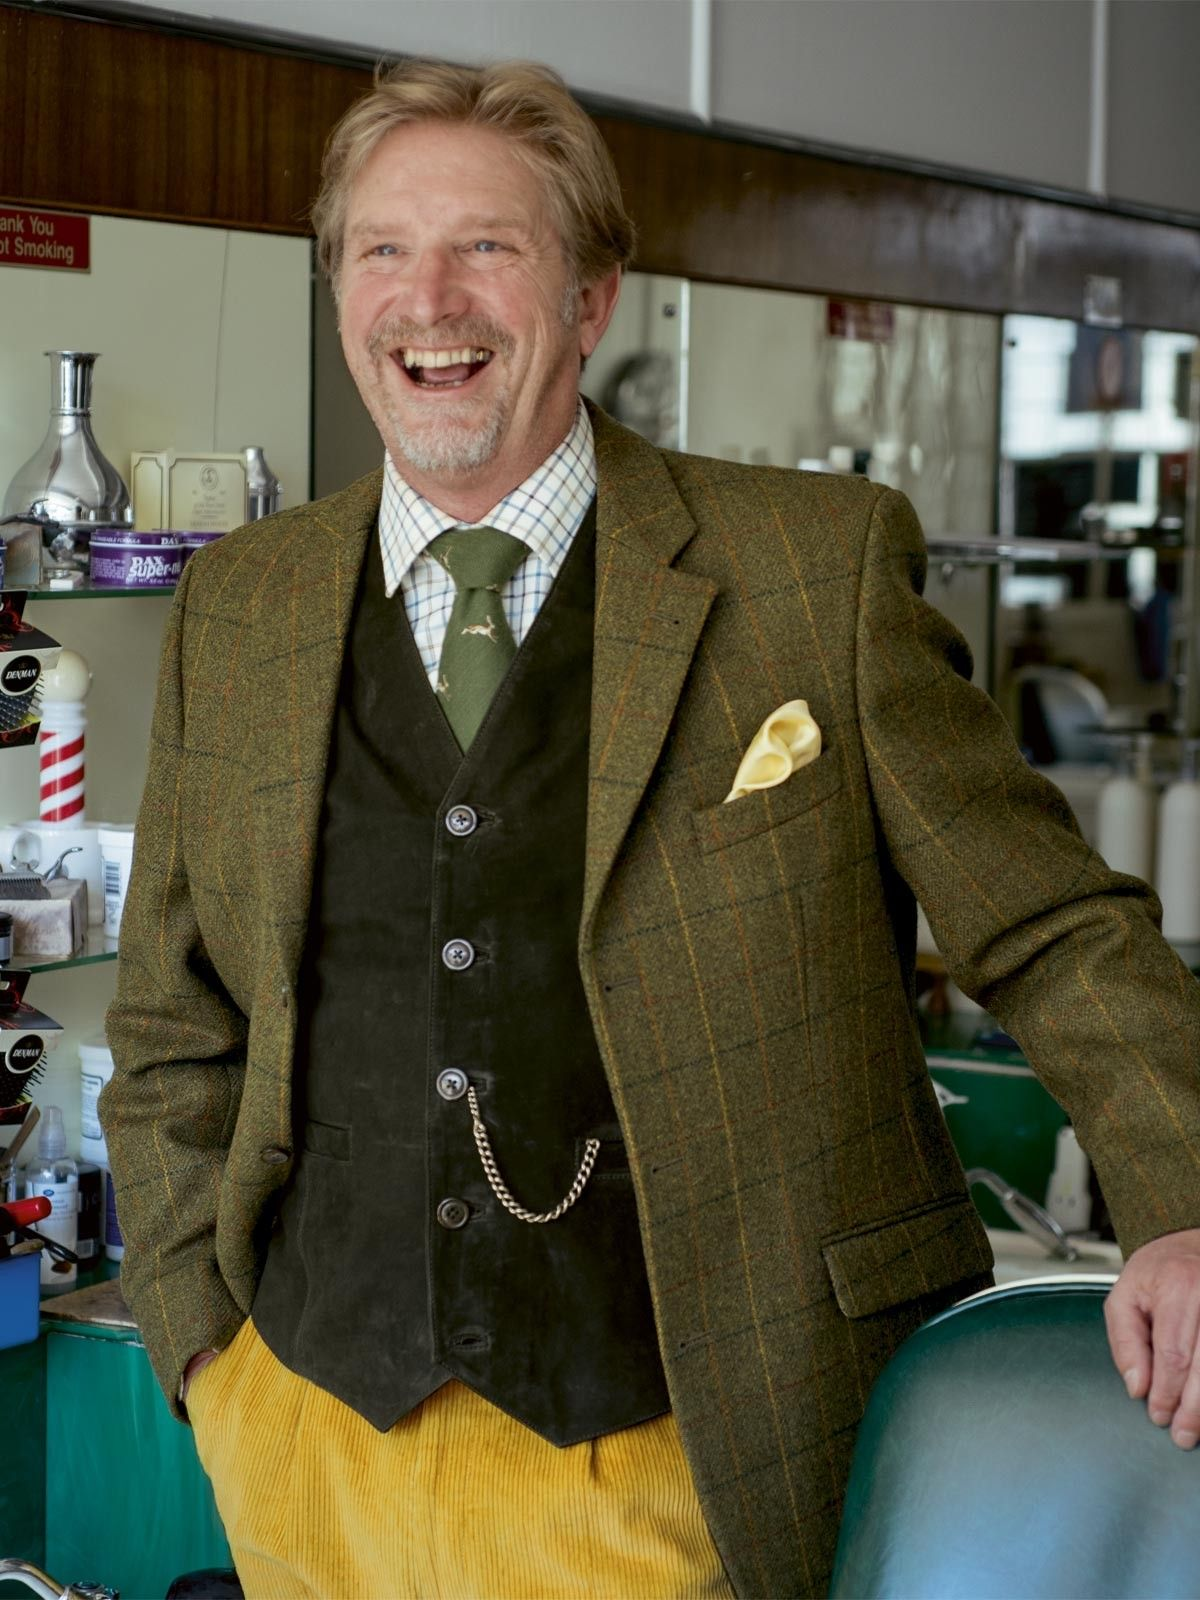 Suede Waistcoat in Evergreen - So versatile, the suede waistcoat holds its own simply with a shirt or stylishly backs up a tweed jacket. Both the warm English Tan or the deep, dark Evergreen work perfectly with our Action Back Jacket. Available in regular or long length (long is 4cm longer).